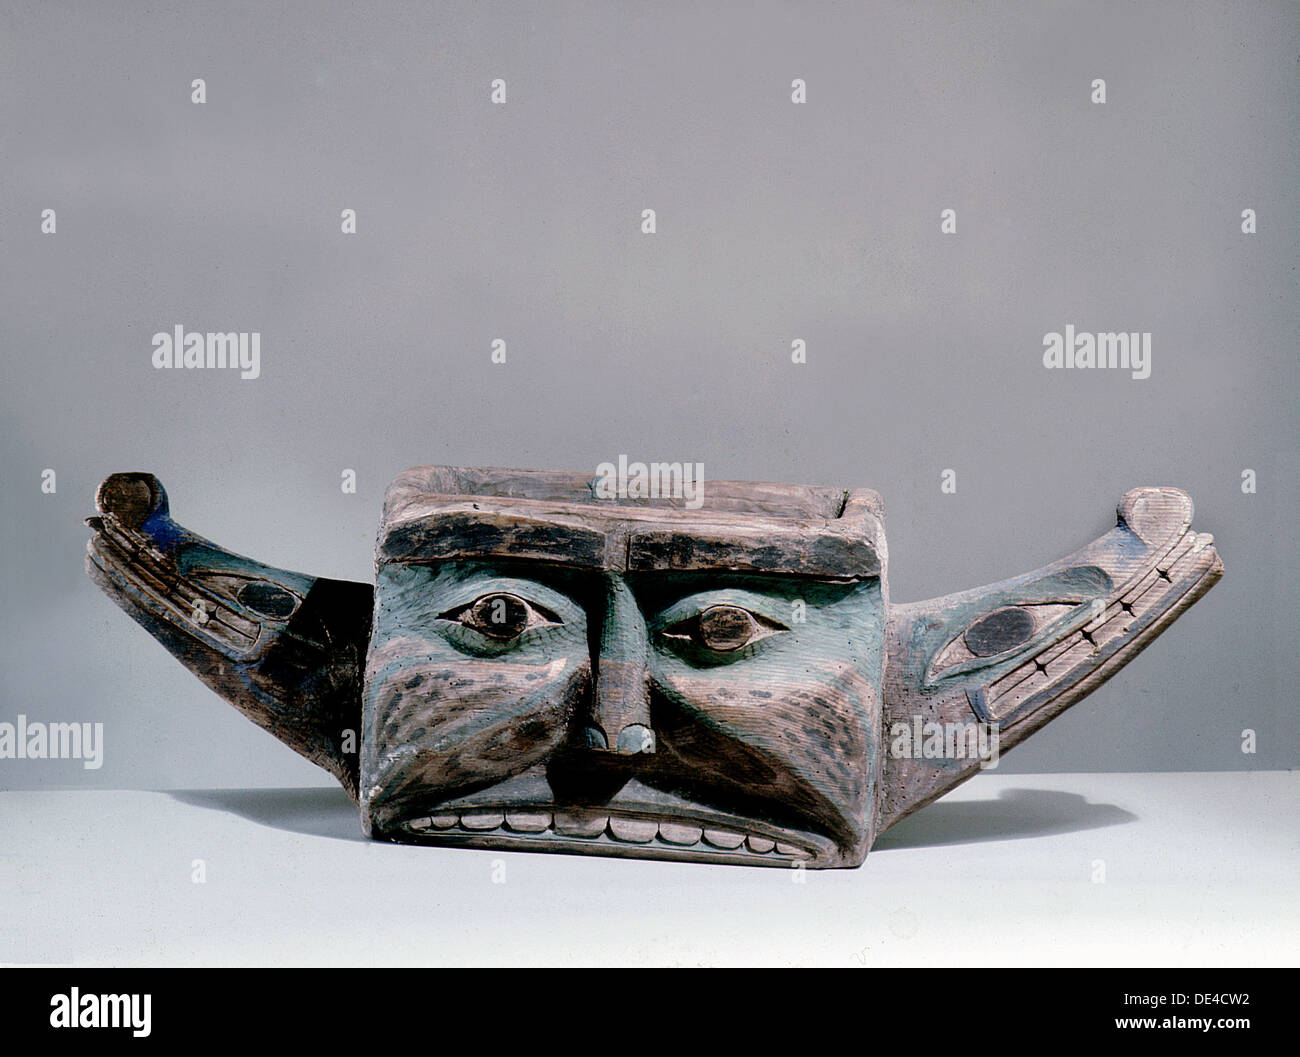 Feast bowl carved and painted with the mythological serpent Sisiutl. - Stock Image